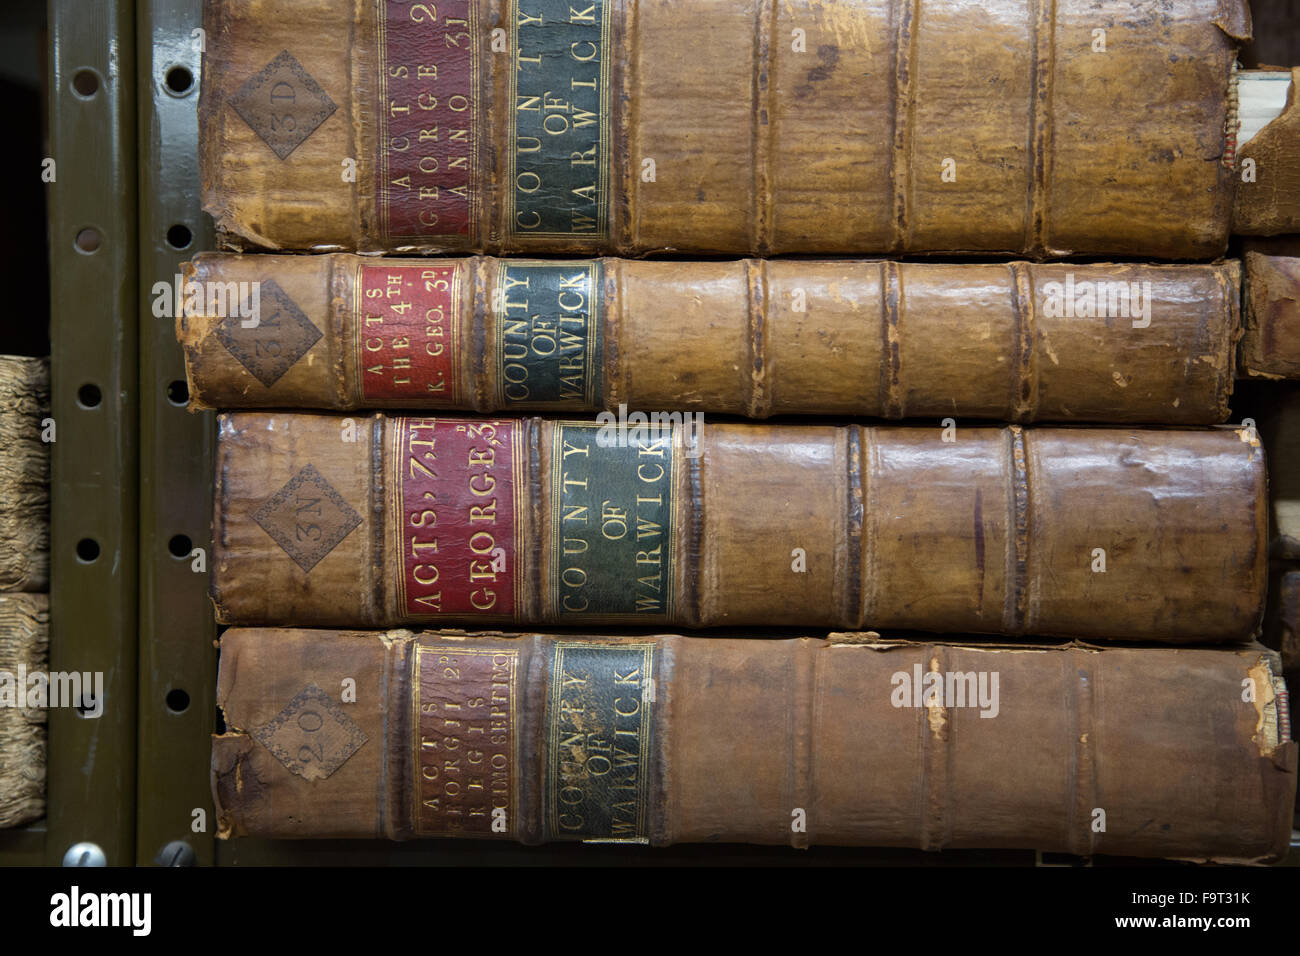 Law Books Uk Stock Photos & Law Books Uk Stock Images - Alamy